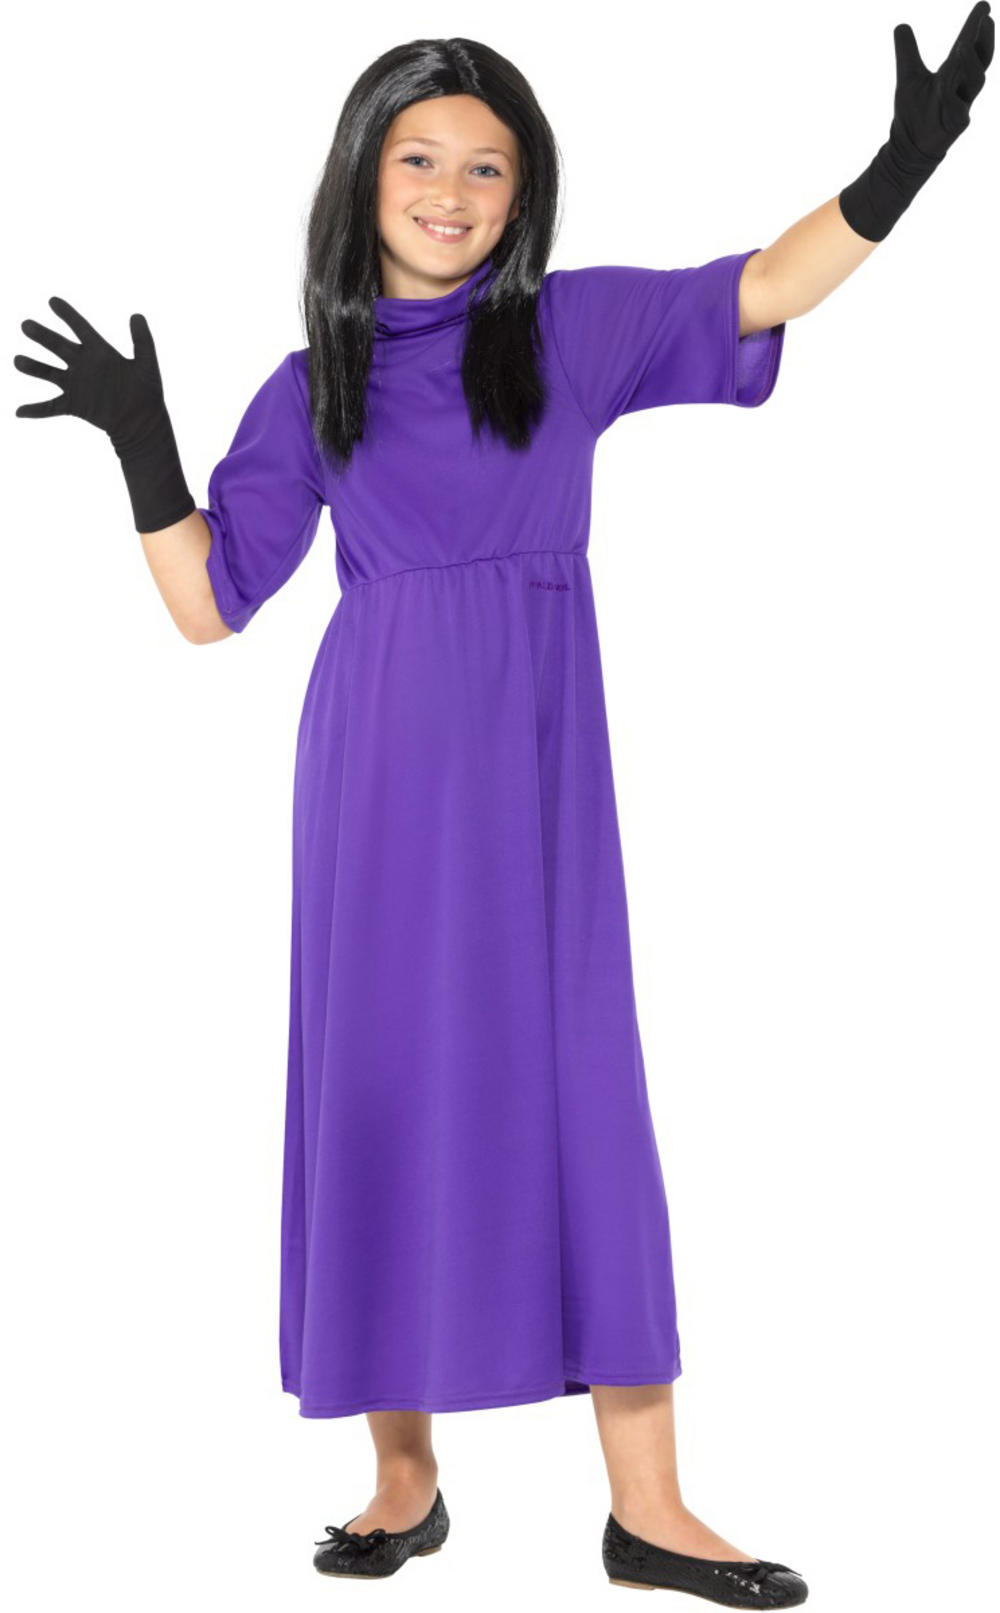 Roald Dahl The Witches Girls Costume